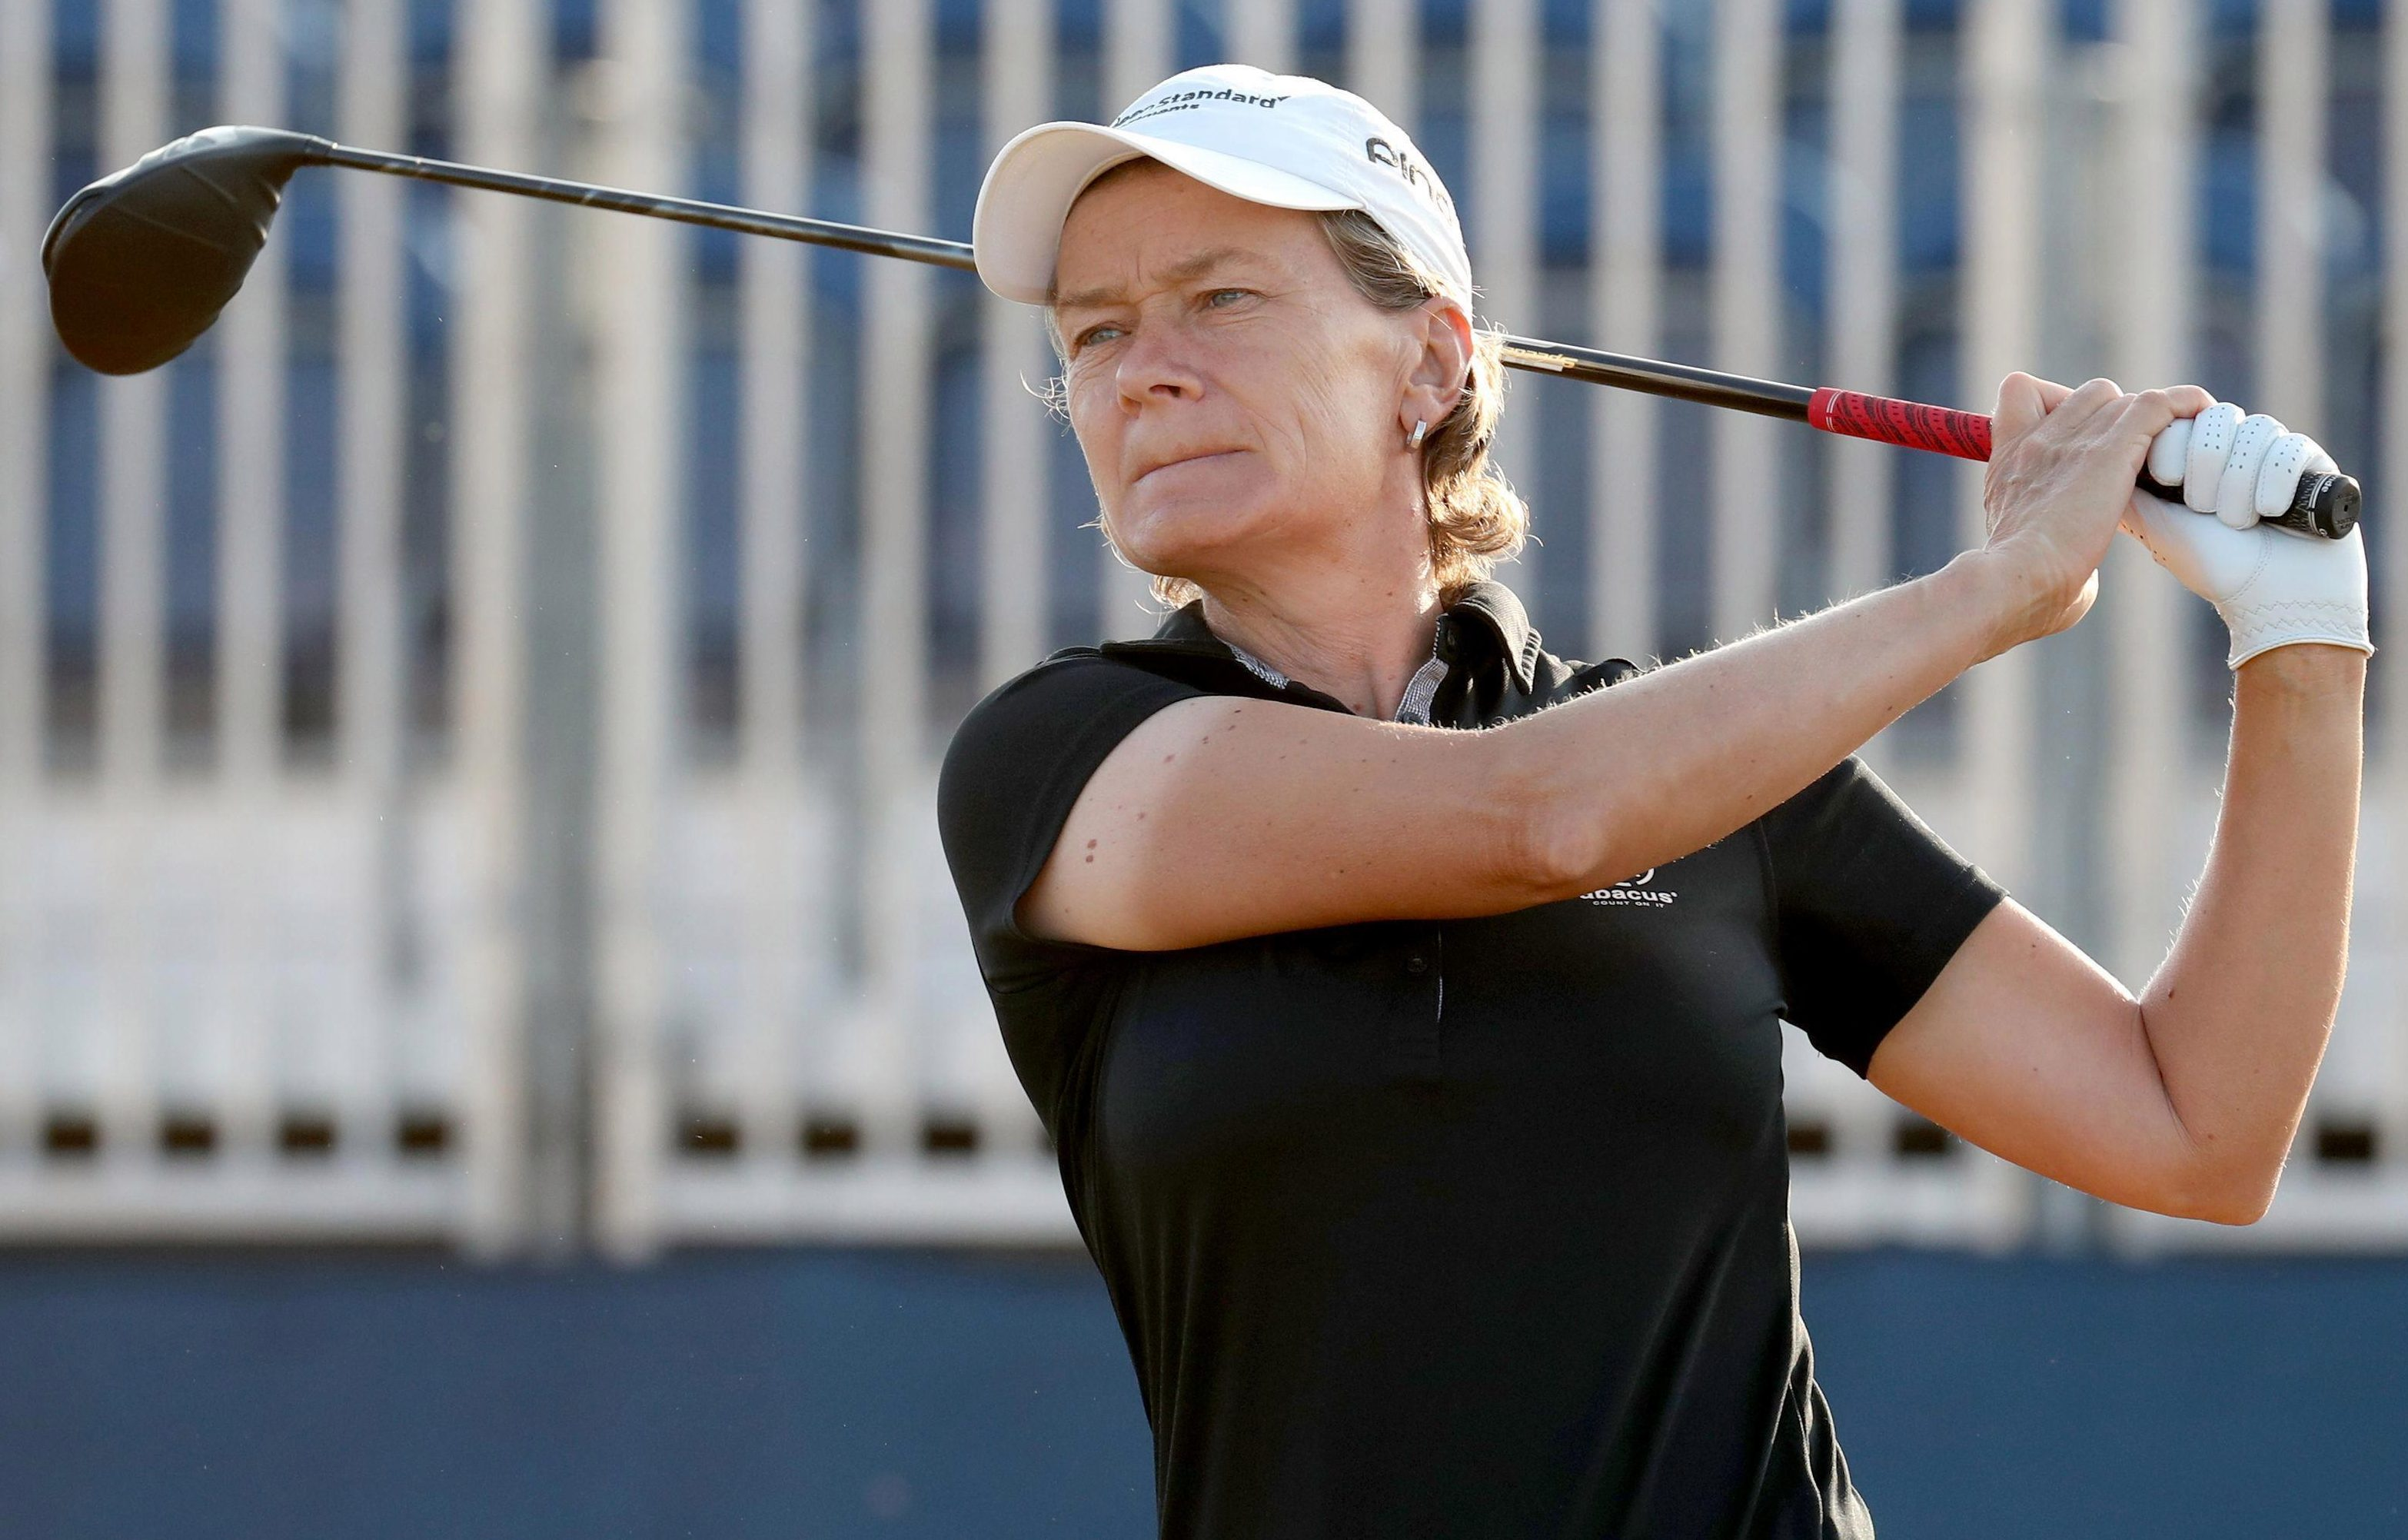 Former Solheim Cup European team captain Catriona Matthew is also in the line-up